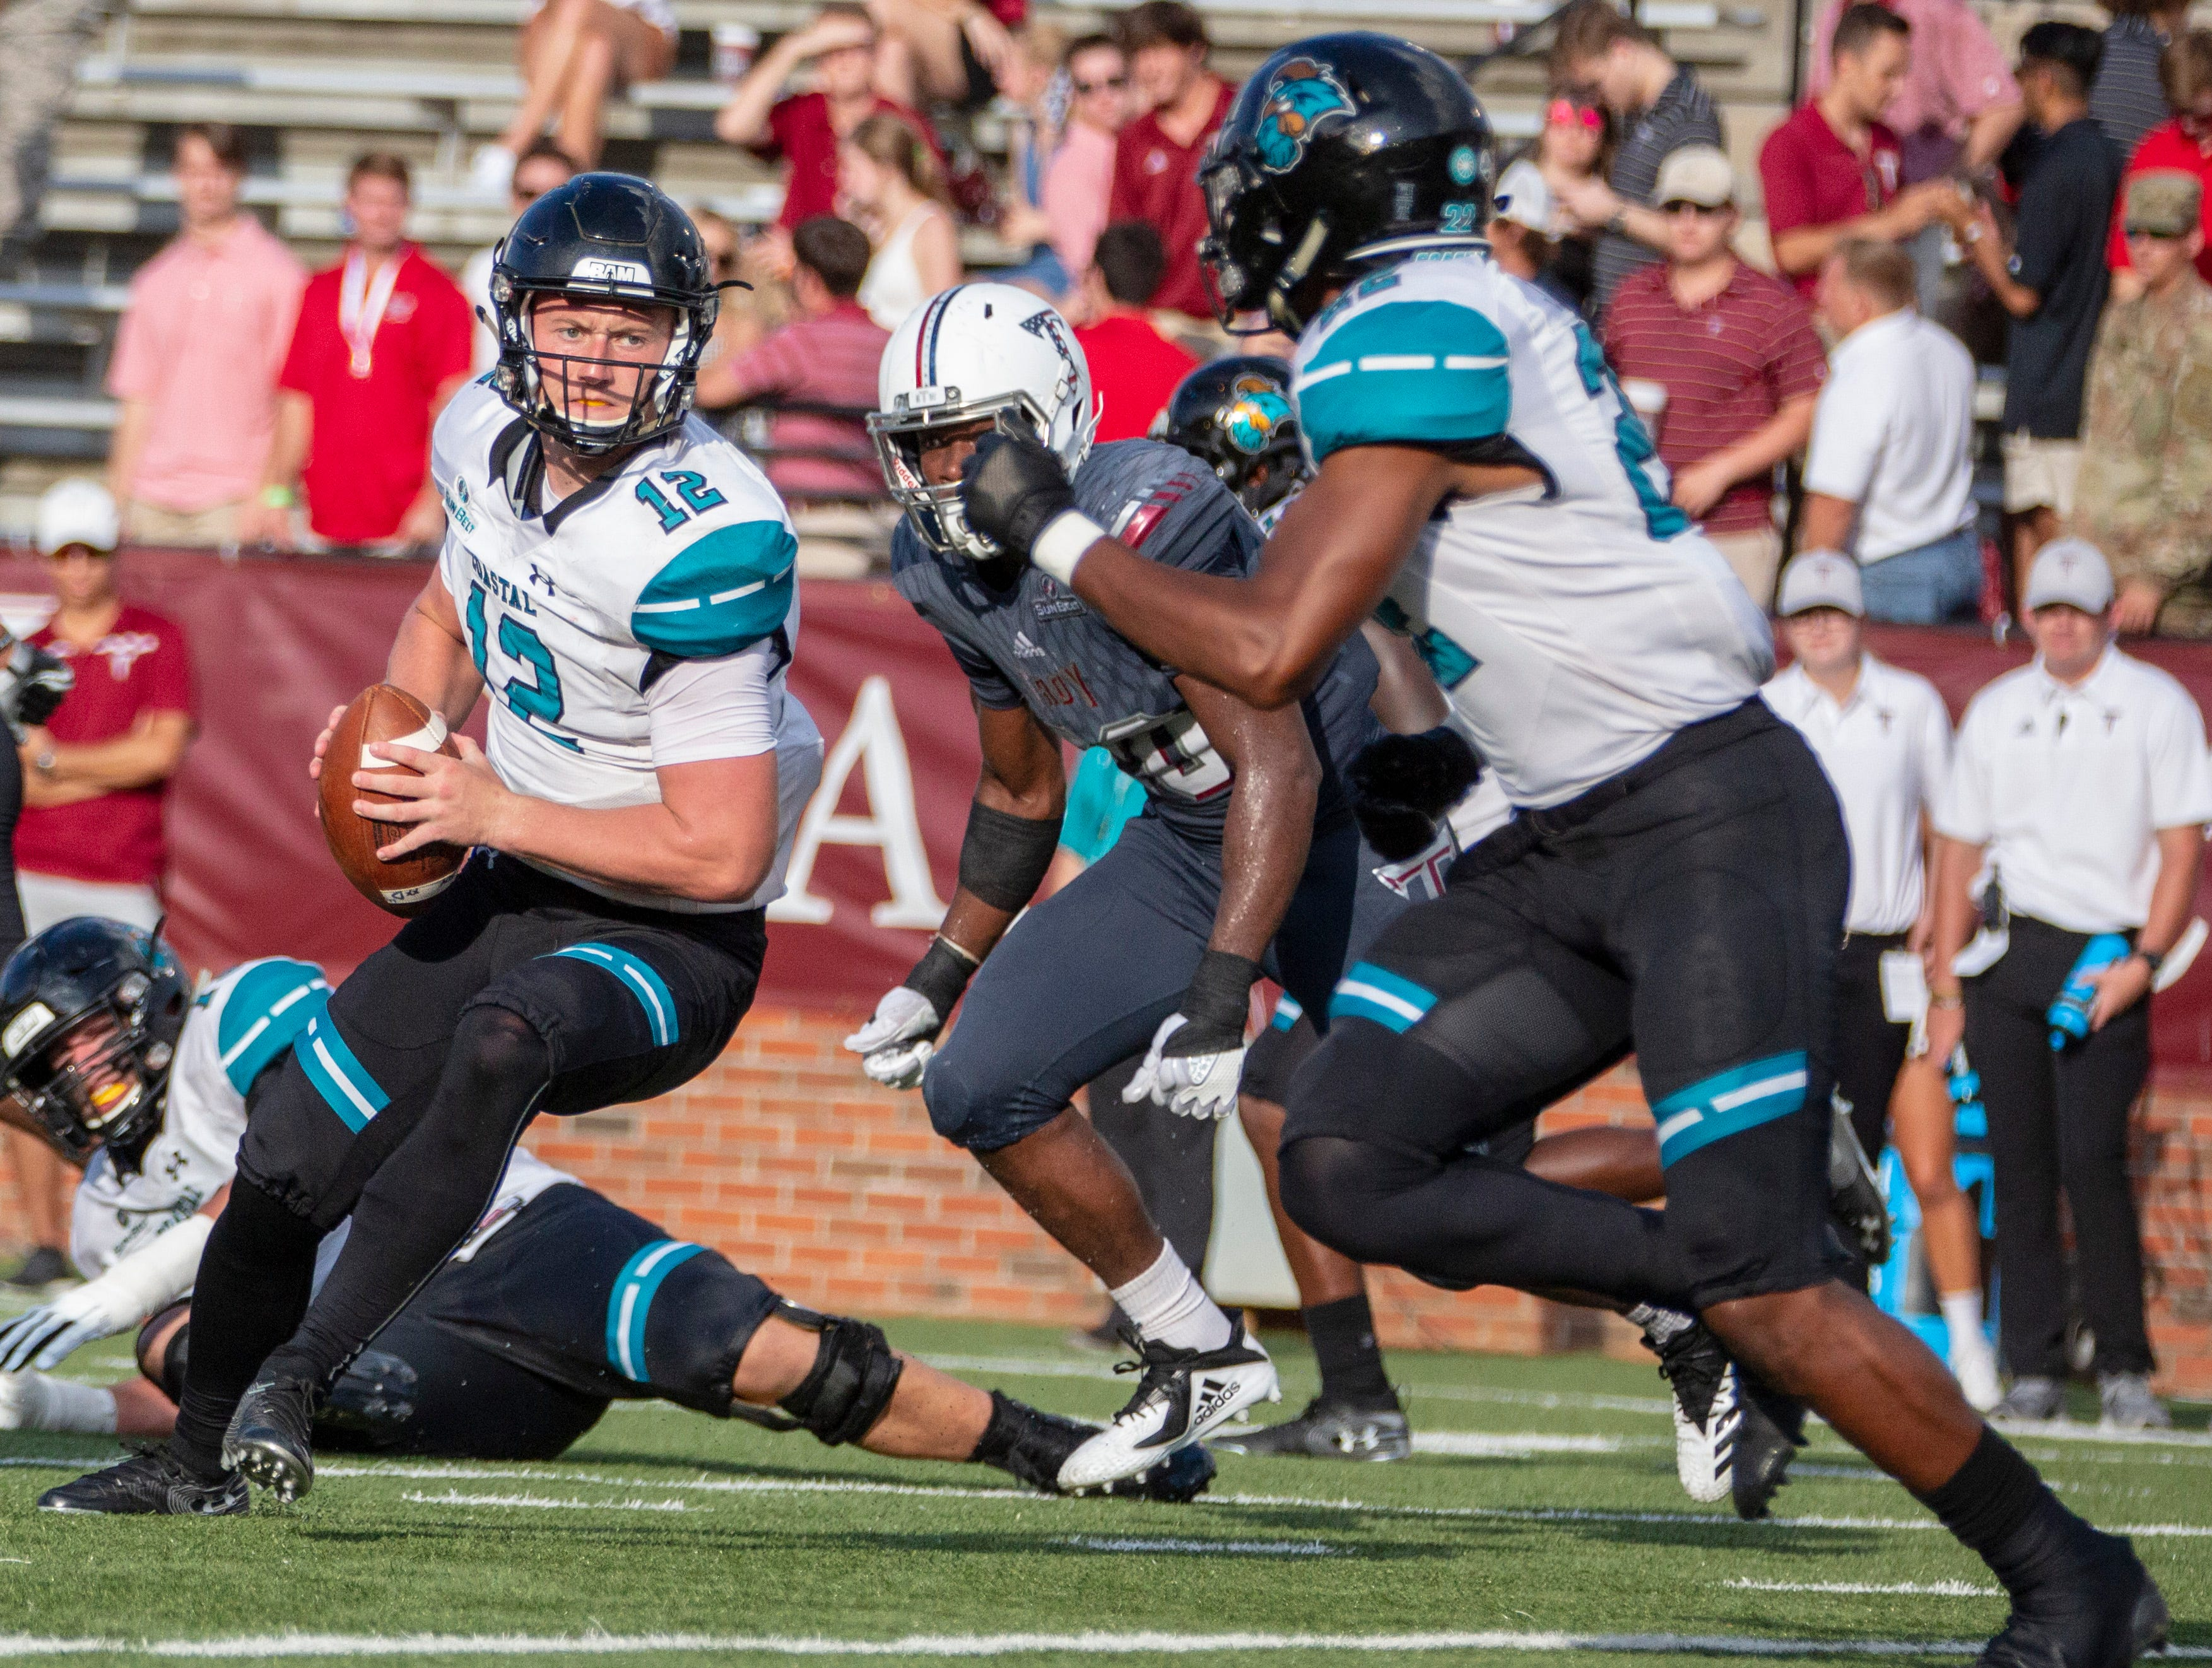 Coastal Carolina's Bryce Carpenter drops back to get eyes on his receiver.